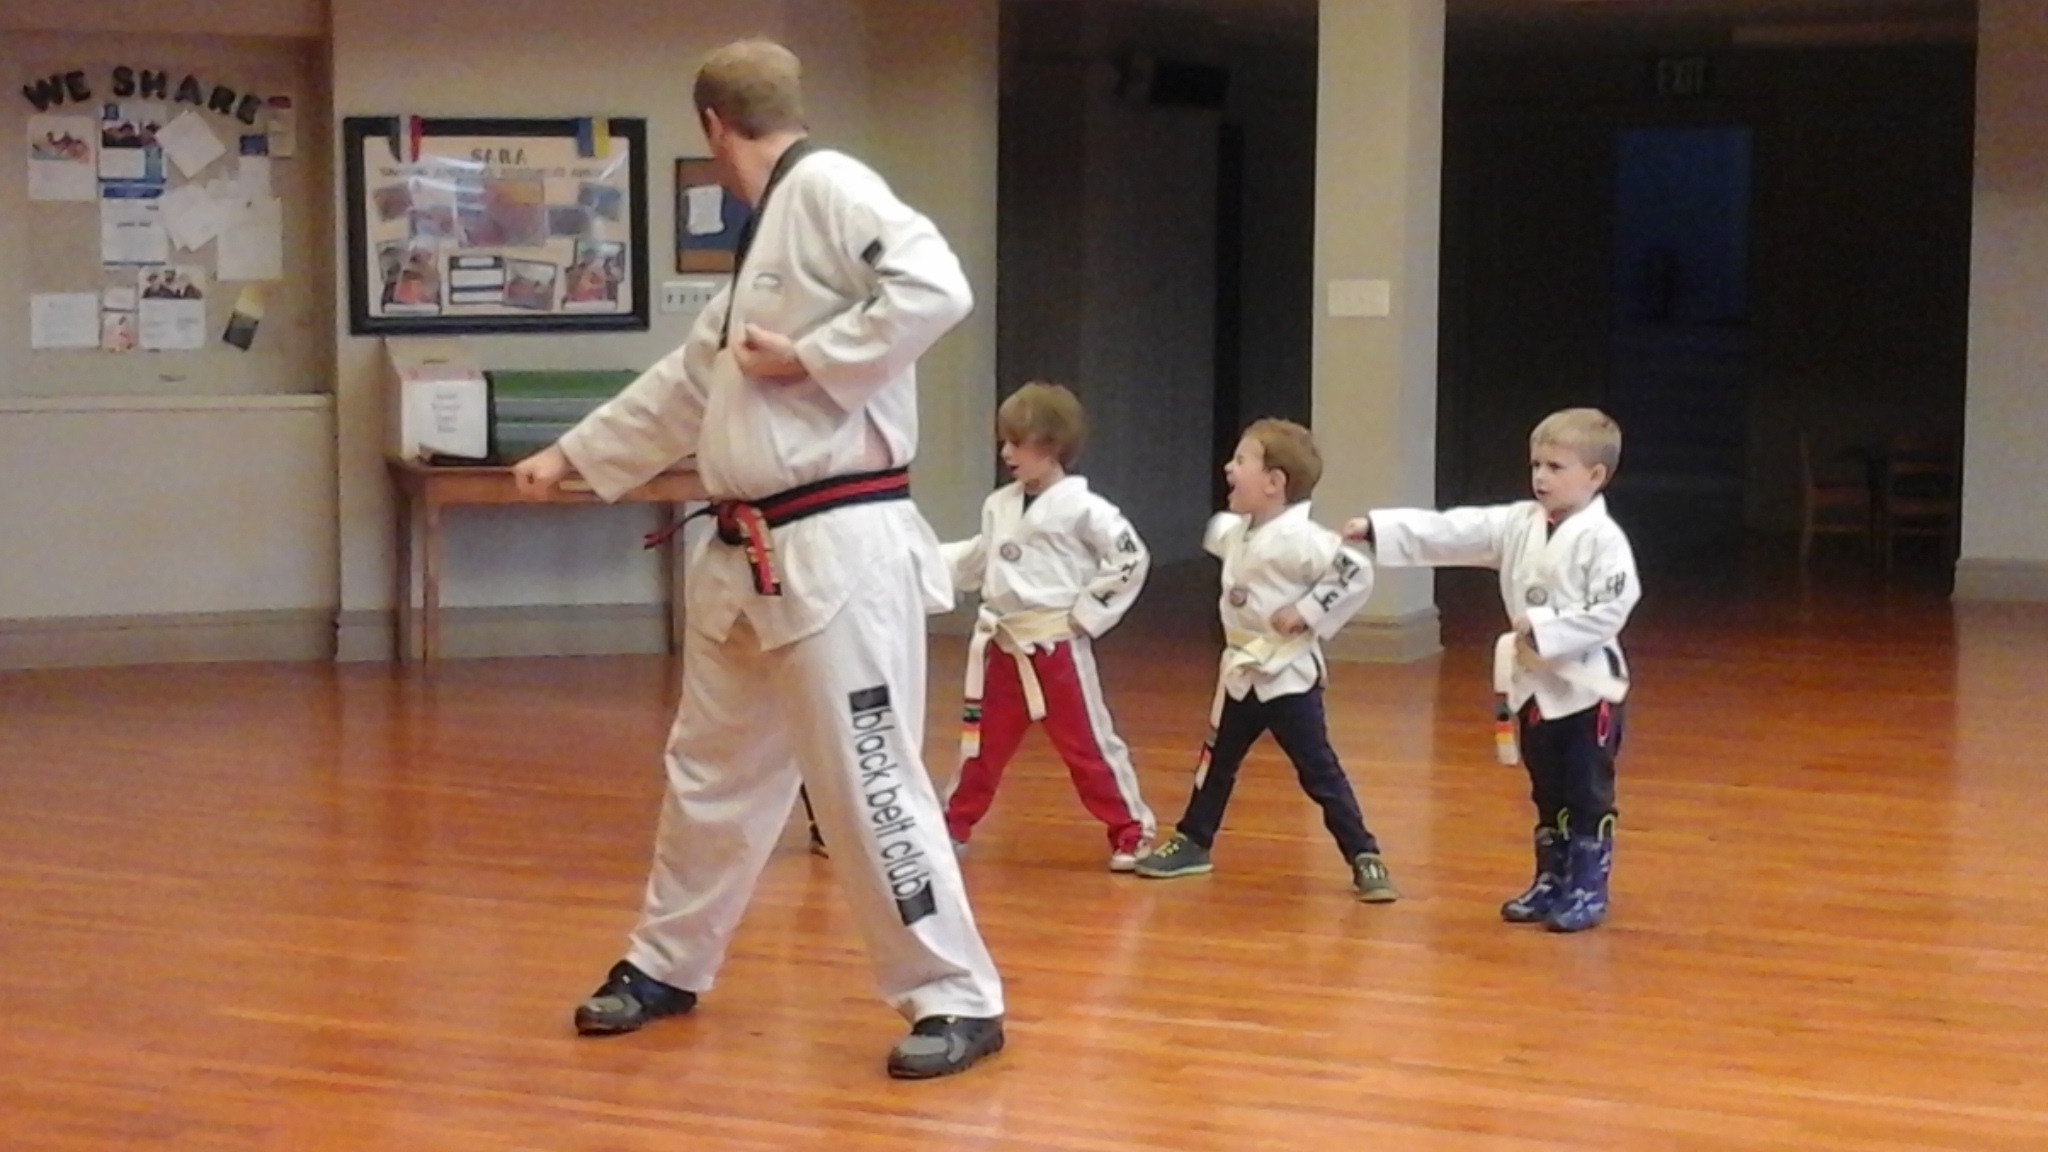 Tae Kwon Do Second Session - Absorbent Minds Montessori School